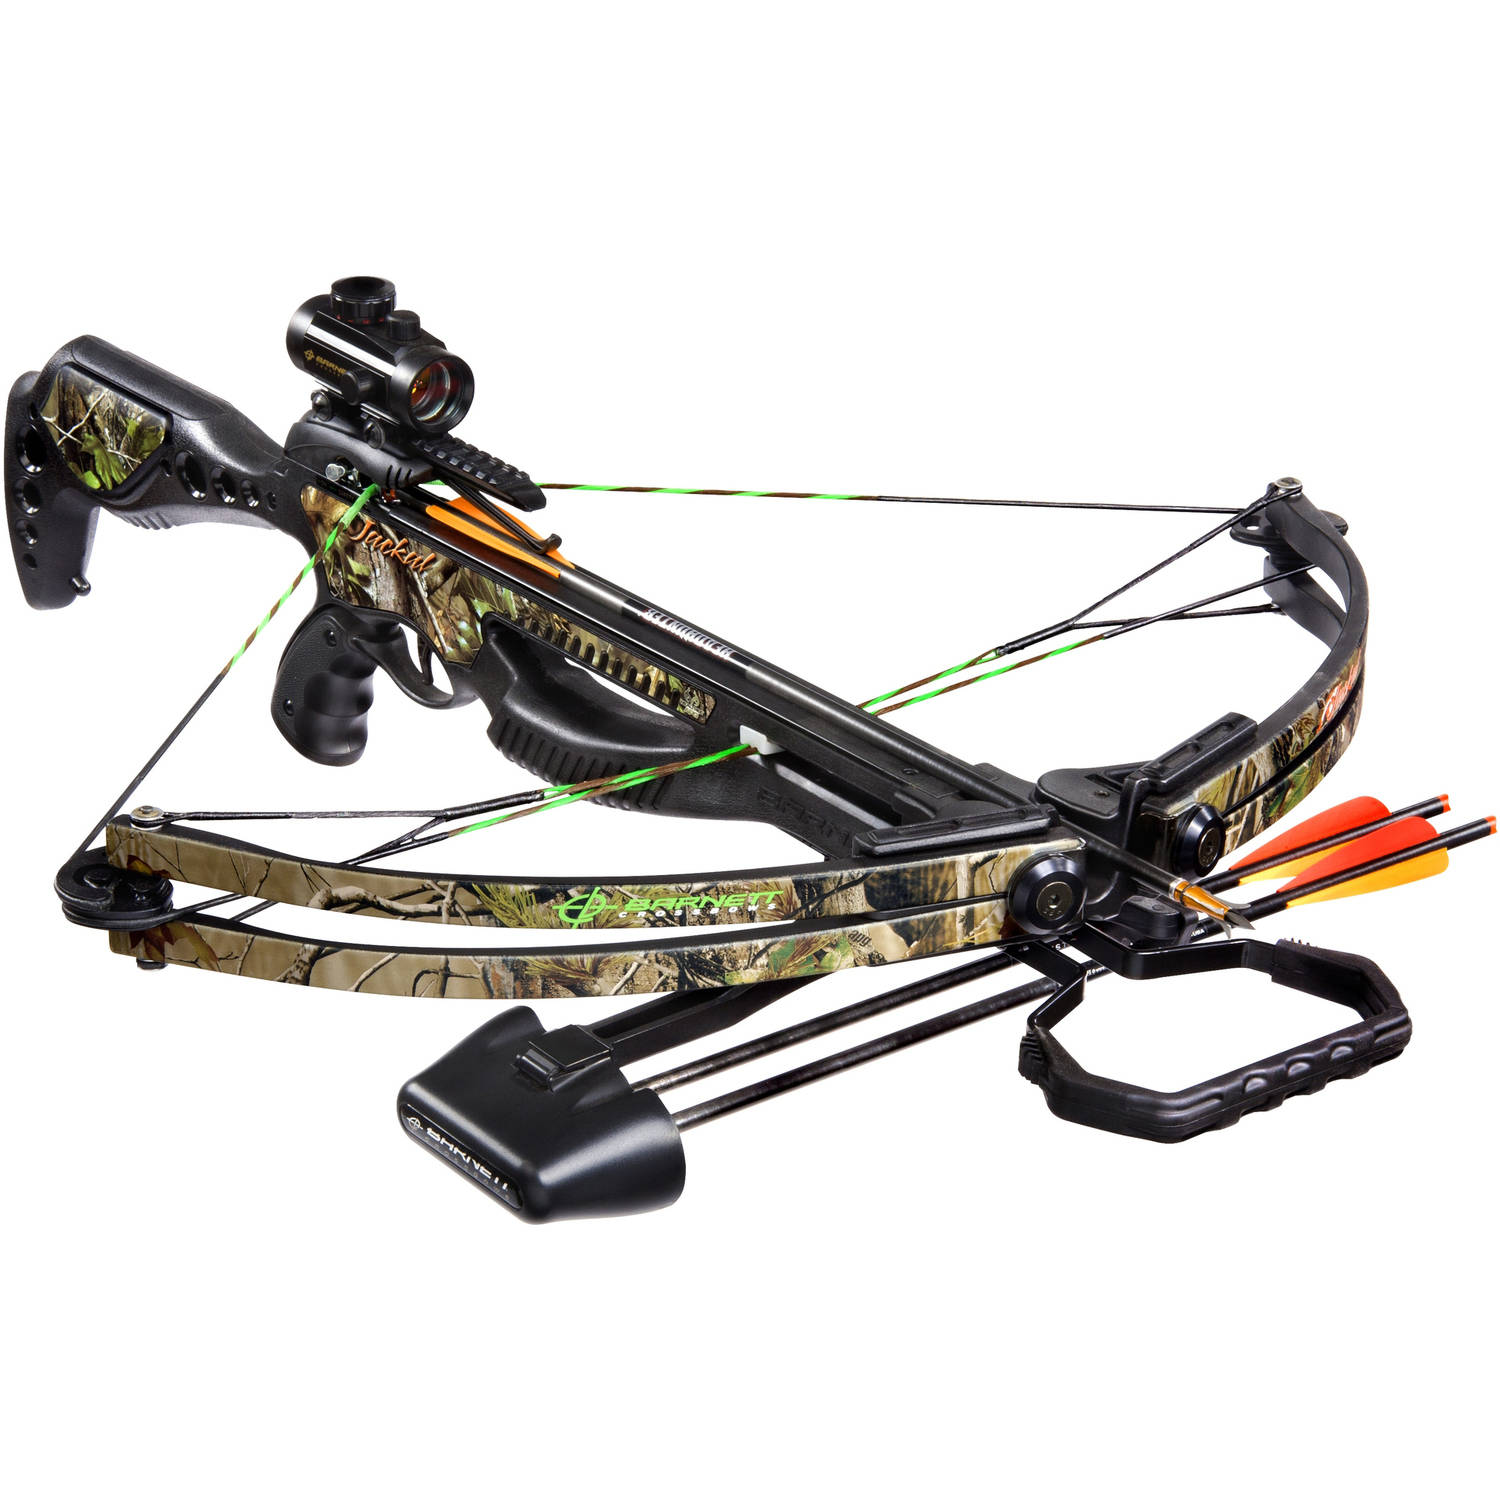 Barnett Sports & Outdoors Jackal Hunting Crossbow Package, Camouflage by Barnett